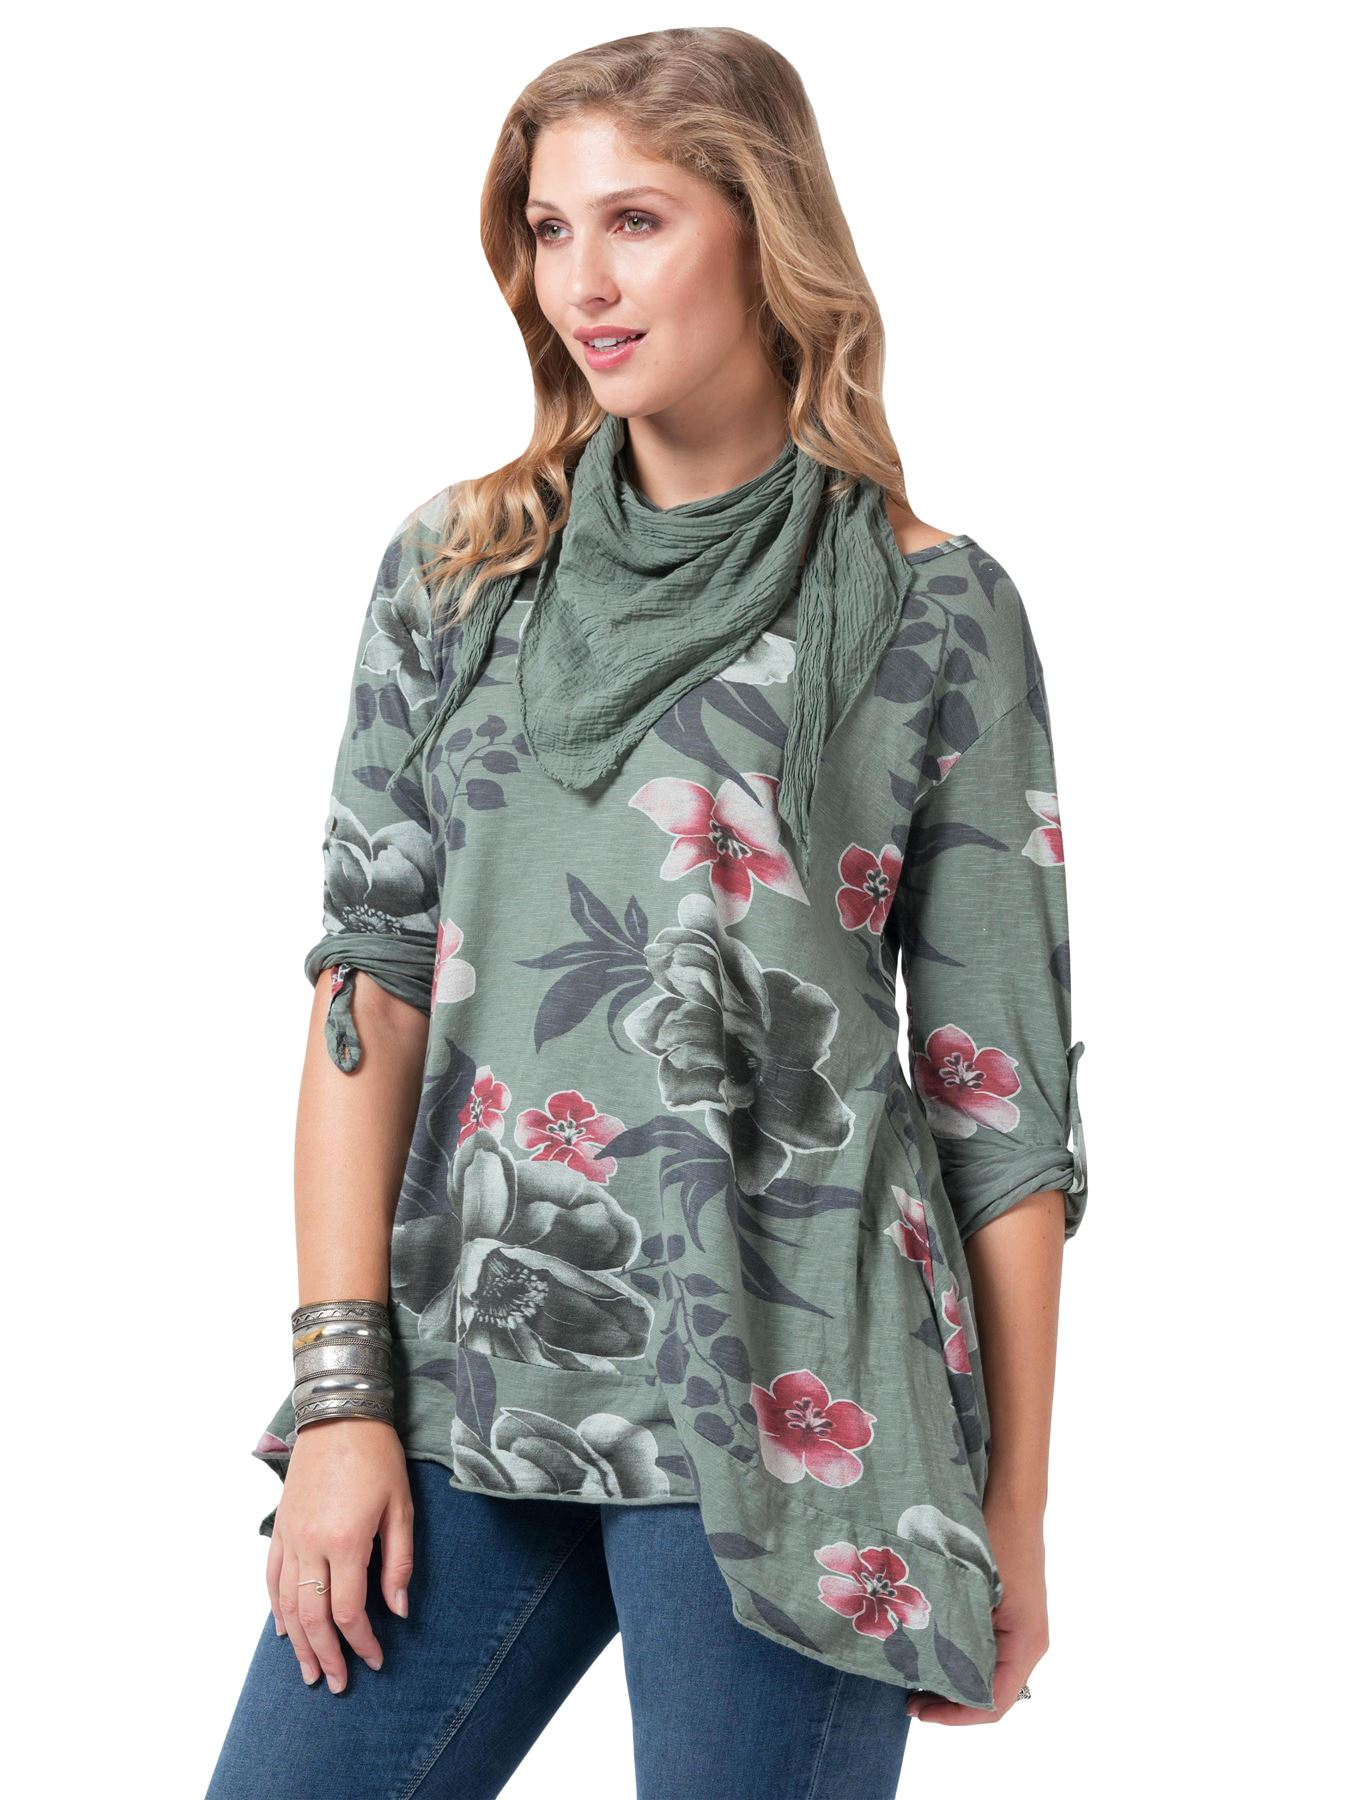 Womens-Top-Ladies-Button-Tab-Flower-patterned-Scarf-Italian-Lagenlook-Crew-Neck